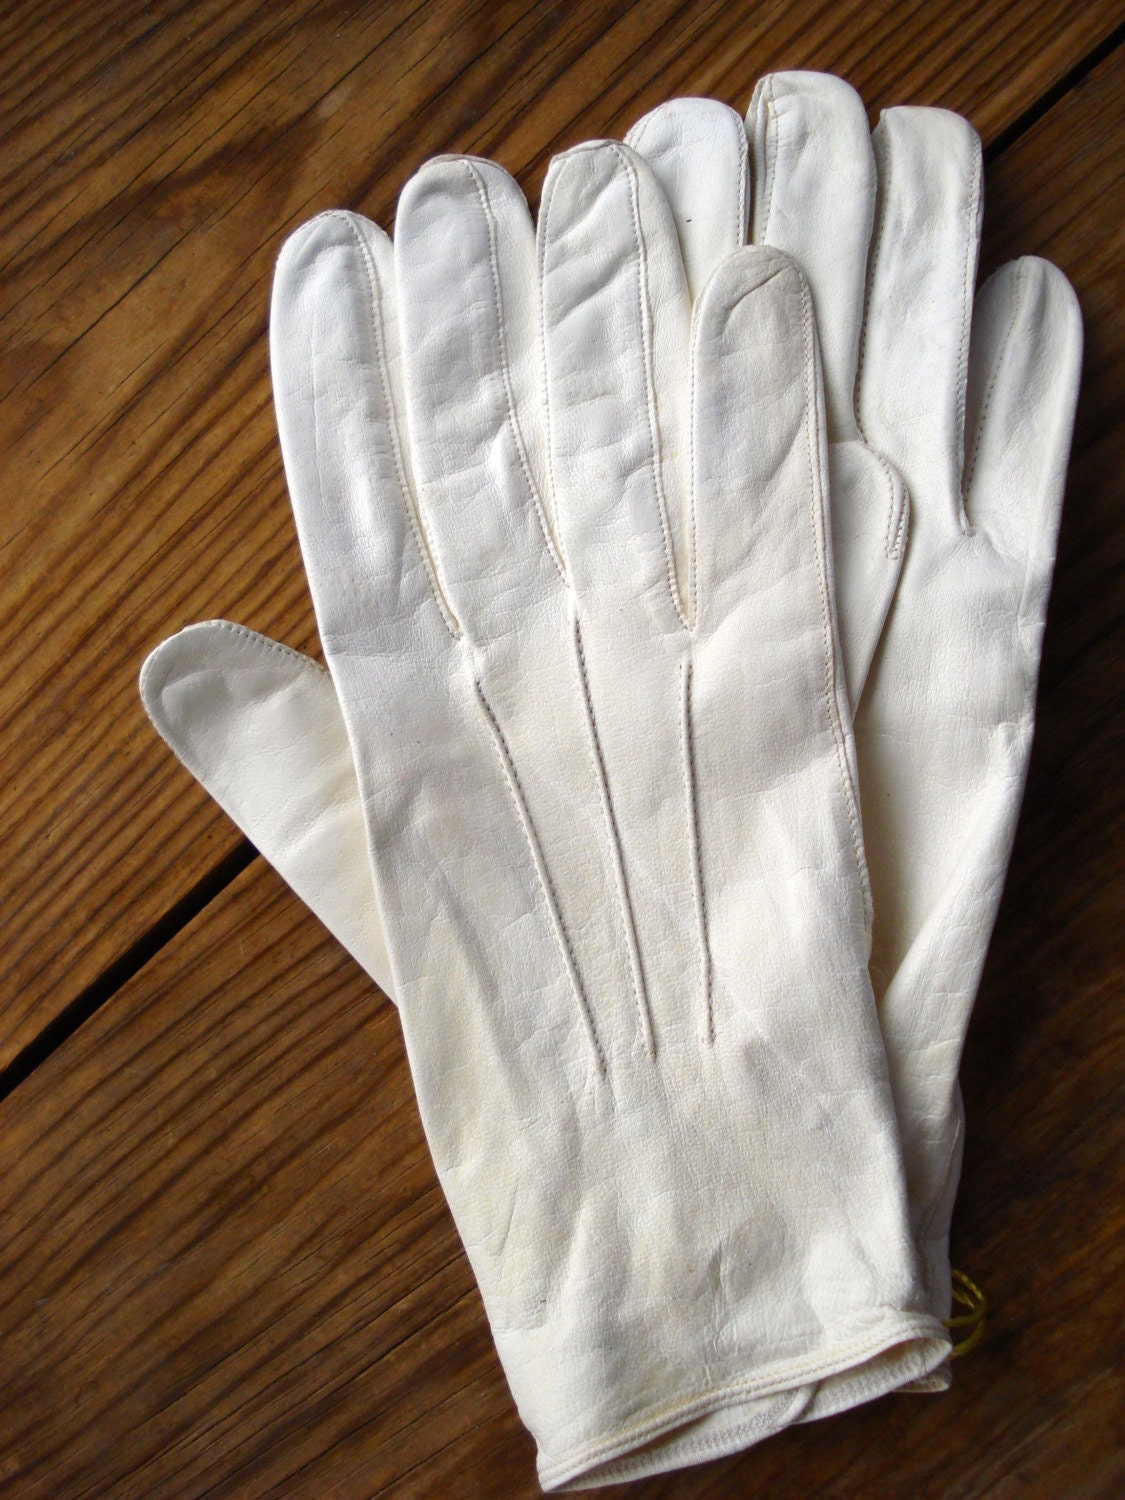 Mens leather kid gloves - Like This Item